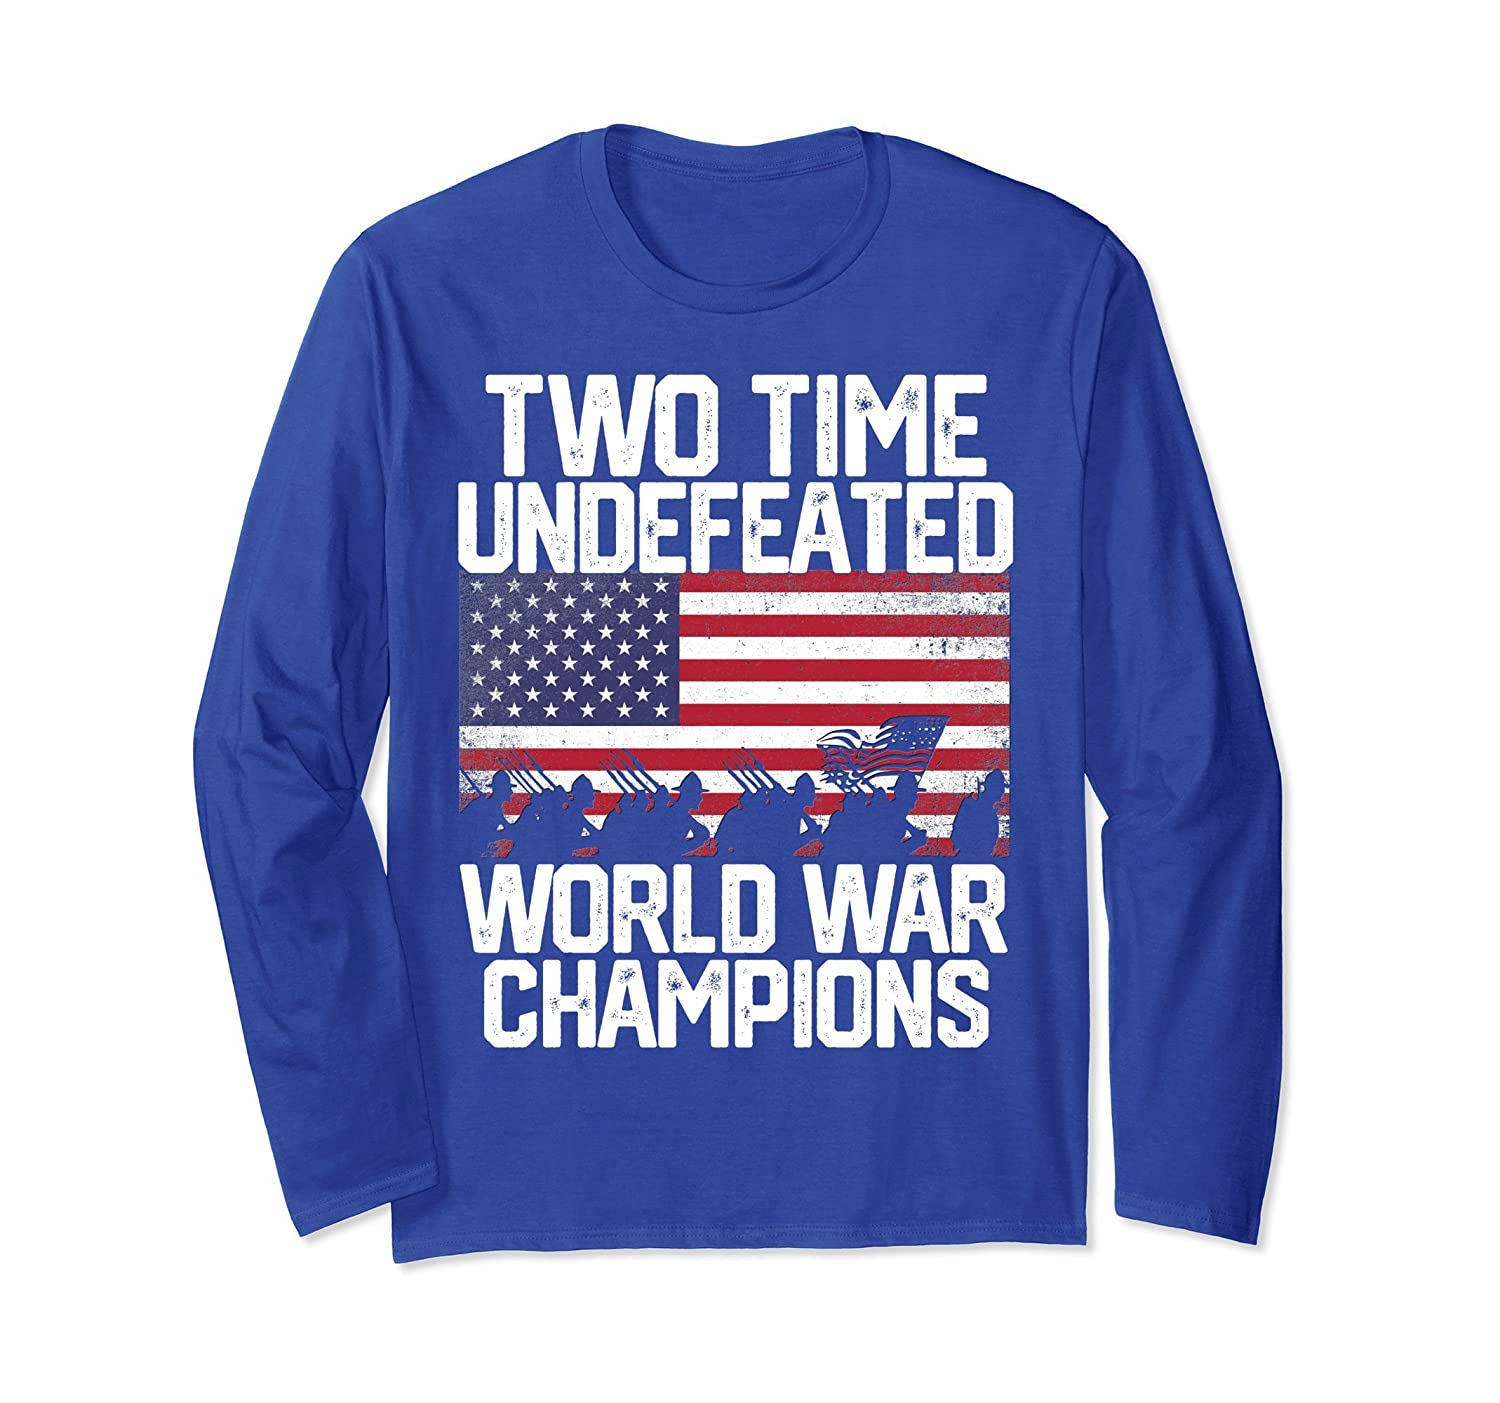 60b172d5 Undefeated Two 2 Time World War Champs Champions T Shirt USA-alottee gift